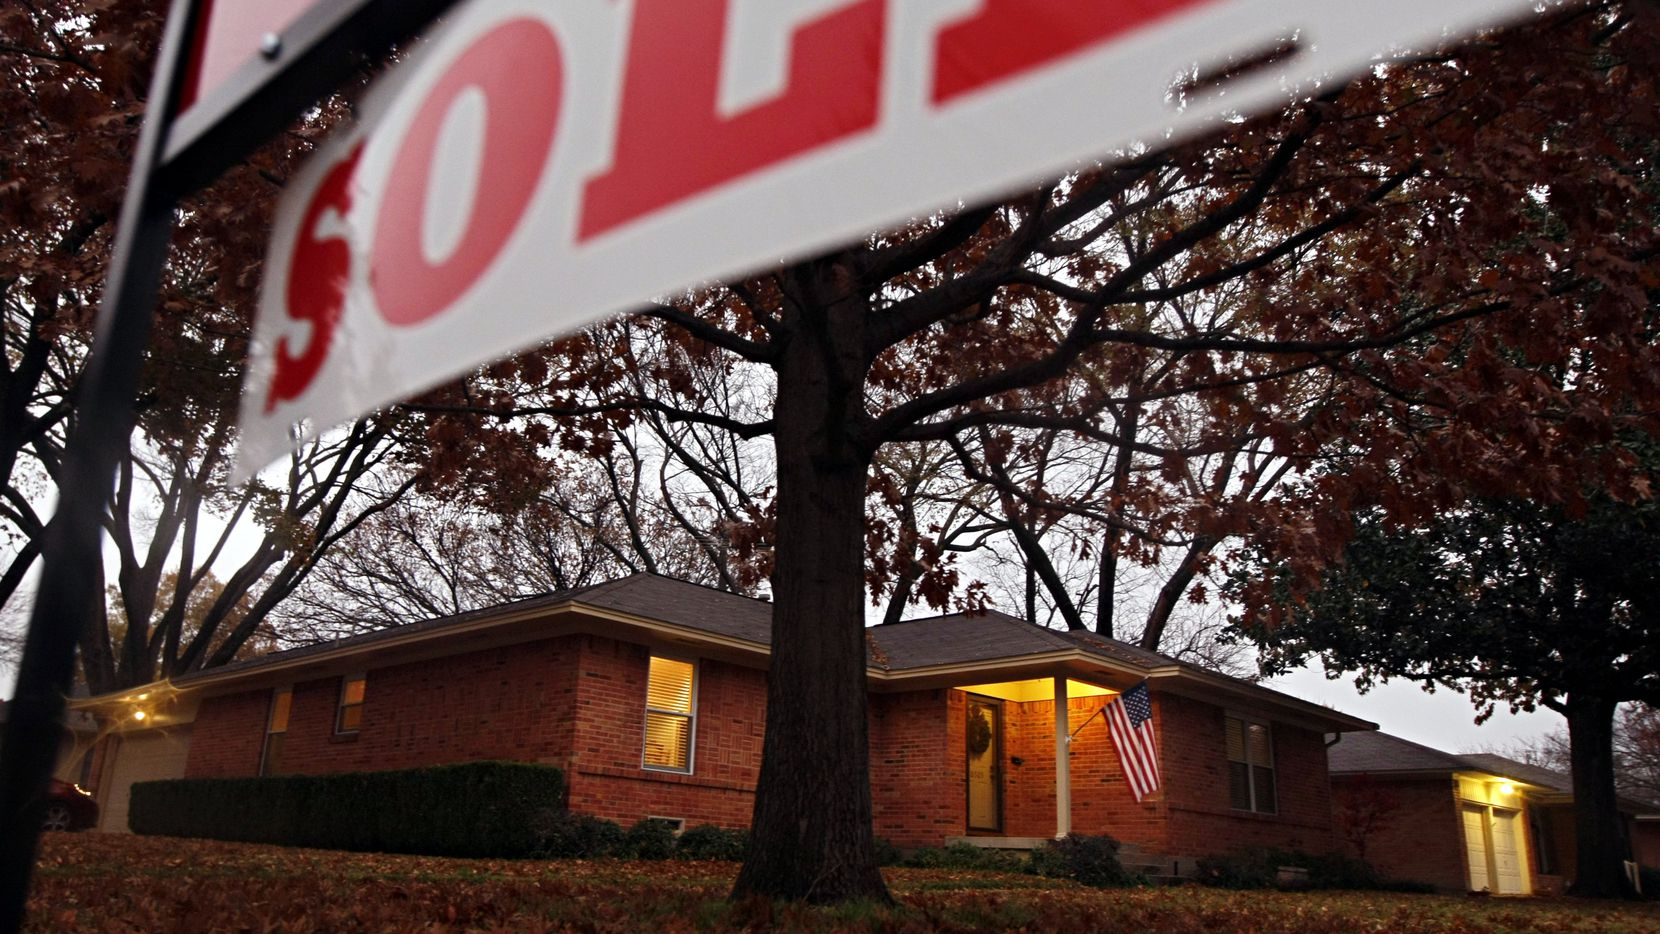 U.S. homeownership has moved higher for the first time in a decade while the number of new rental households has dropped.